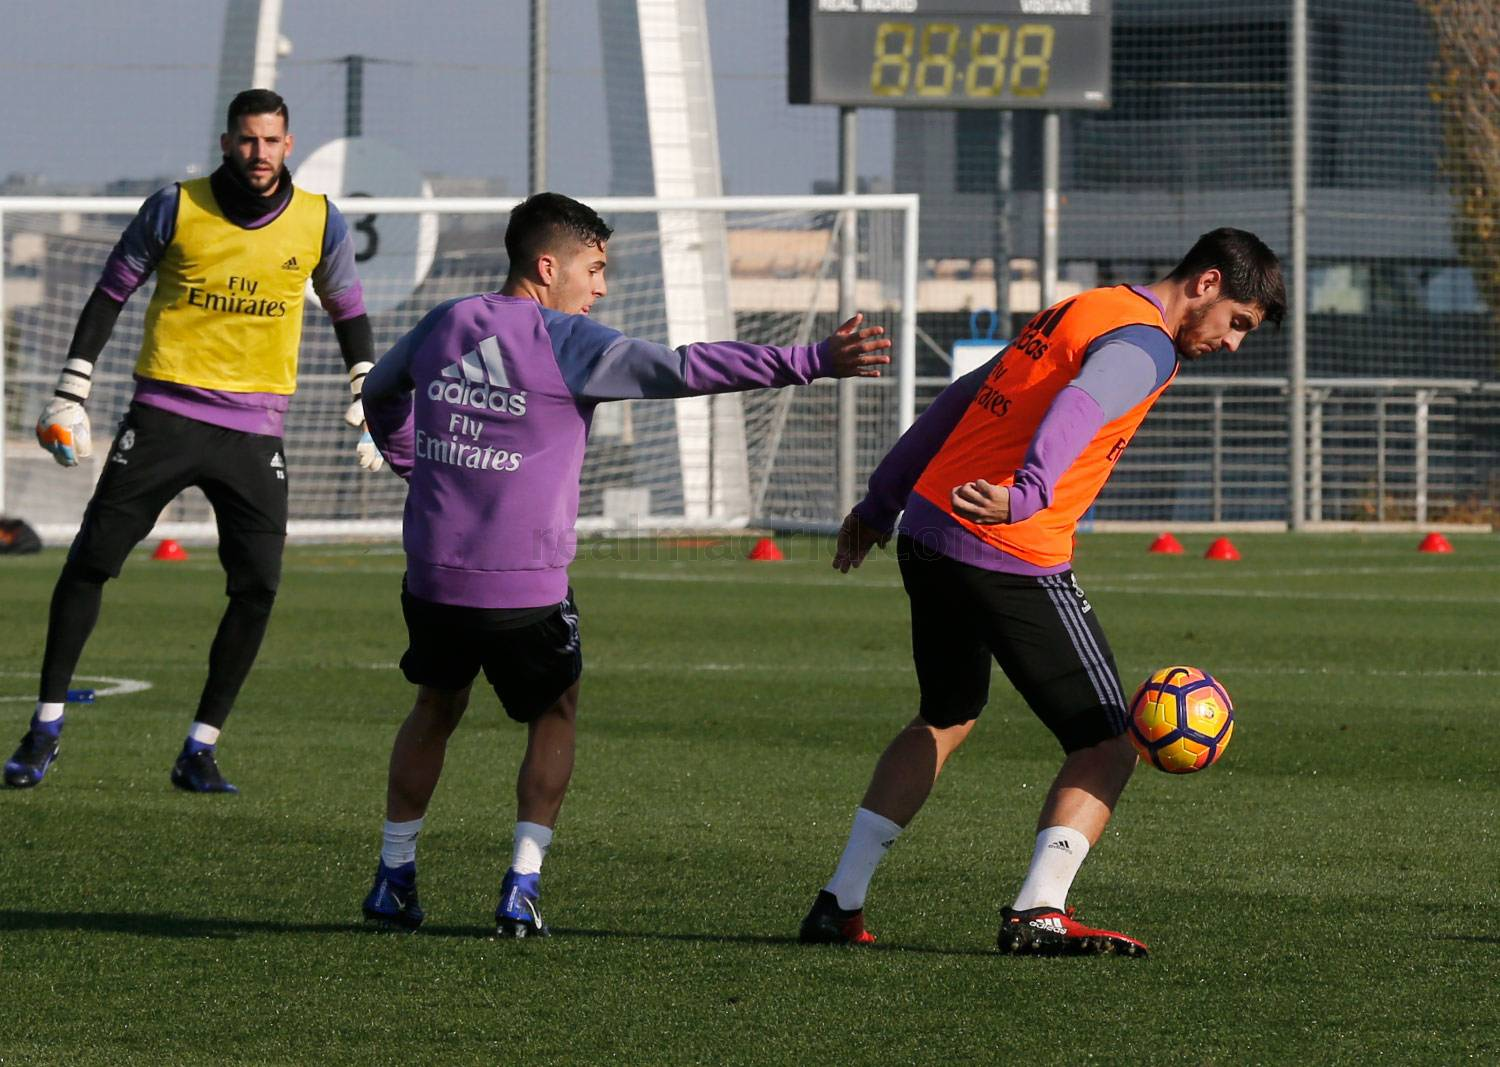 Real Madrid - Entrenamiento del Real Madrid - 08-12-2016